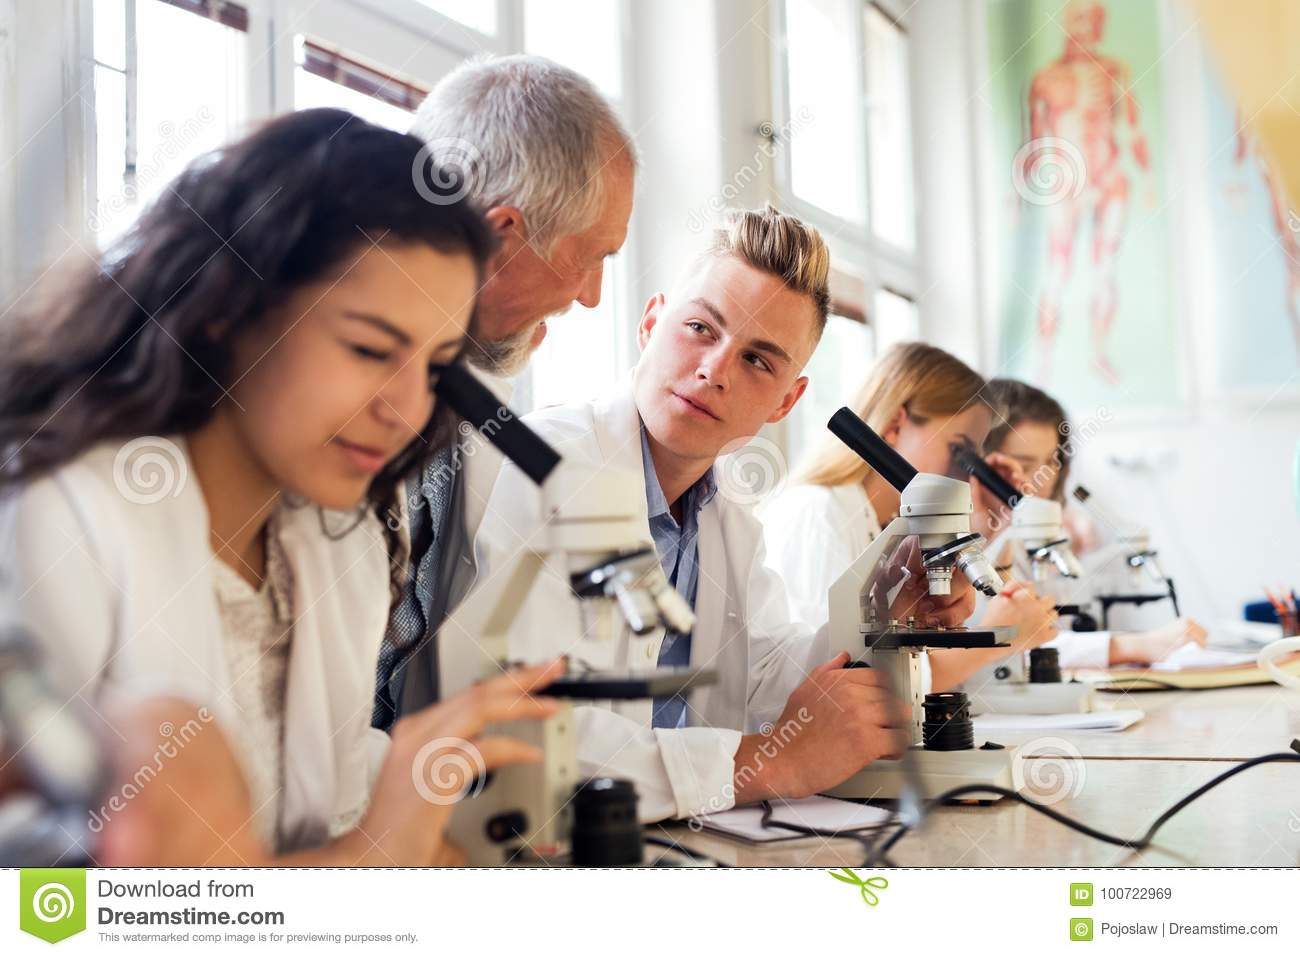 Senior teacher teaching biology to students in laboratory.